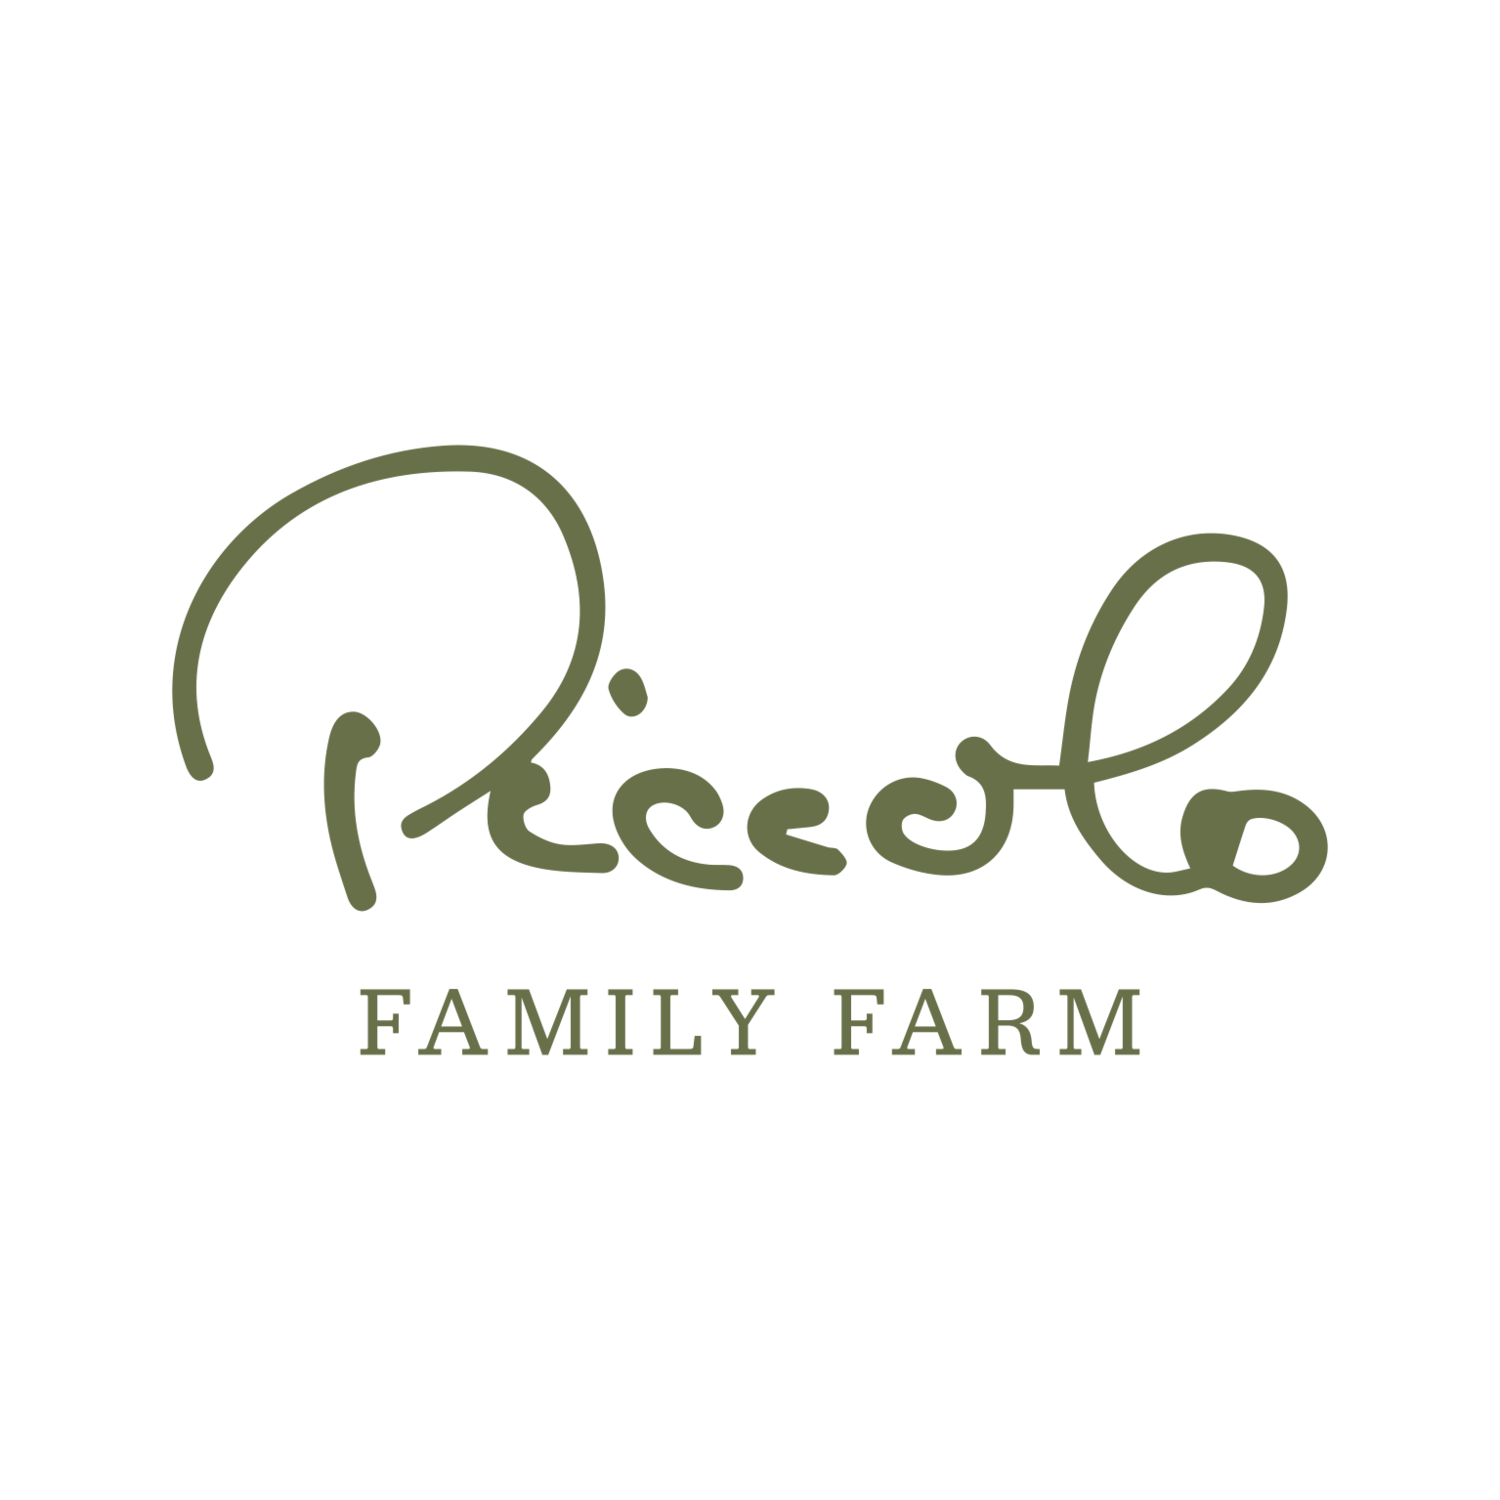 Piccolo Family Farm